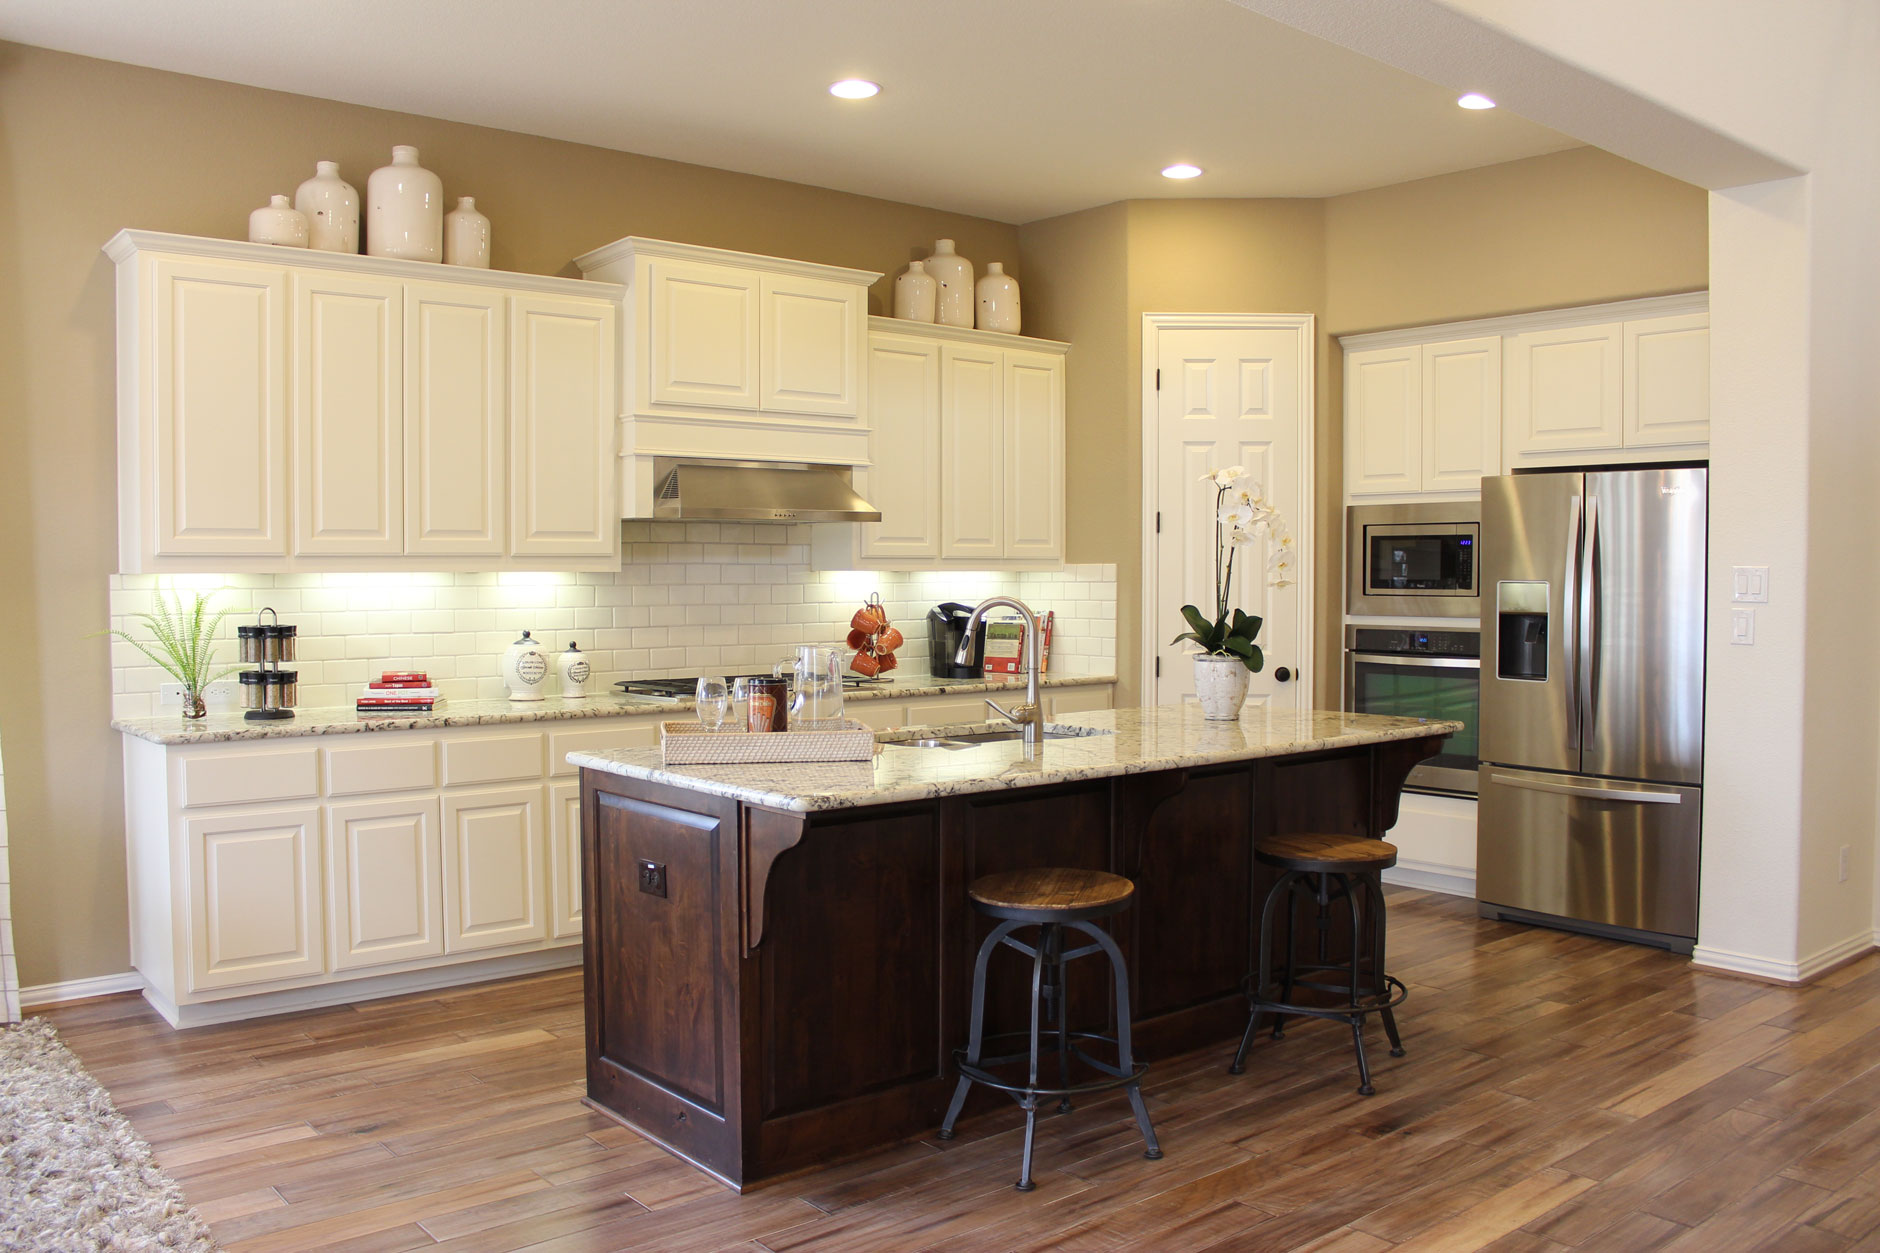 Choose Flooring That Complements Cabinet Color Burrows Cabinets - Latest kitchen cabinet colors